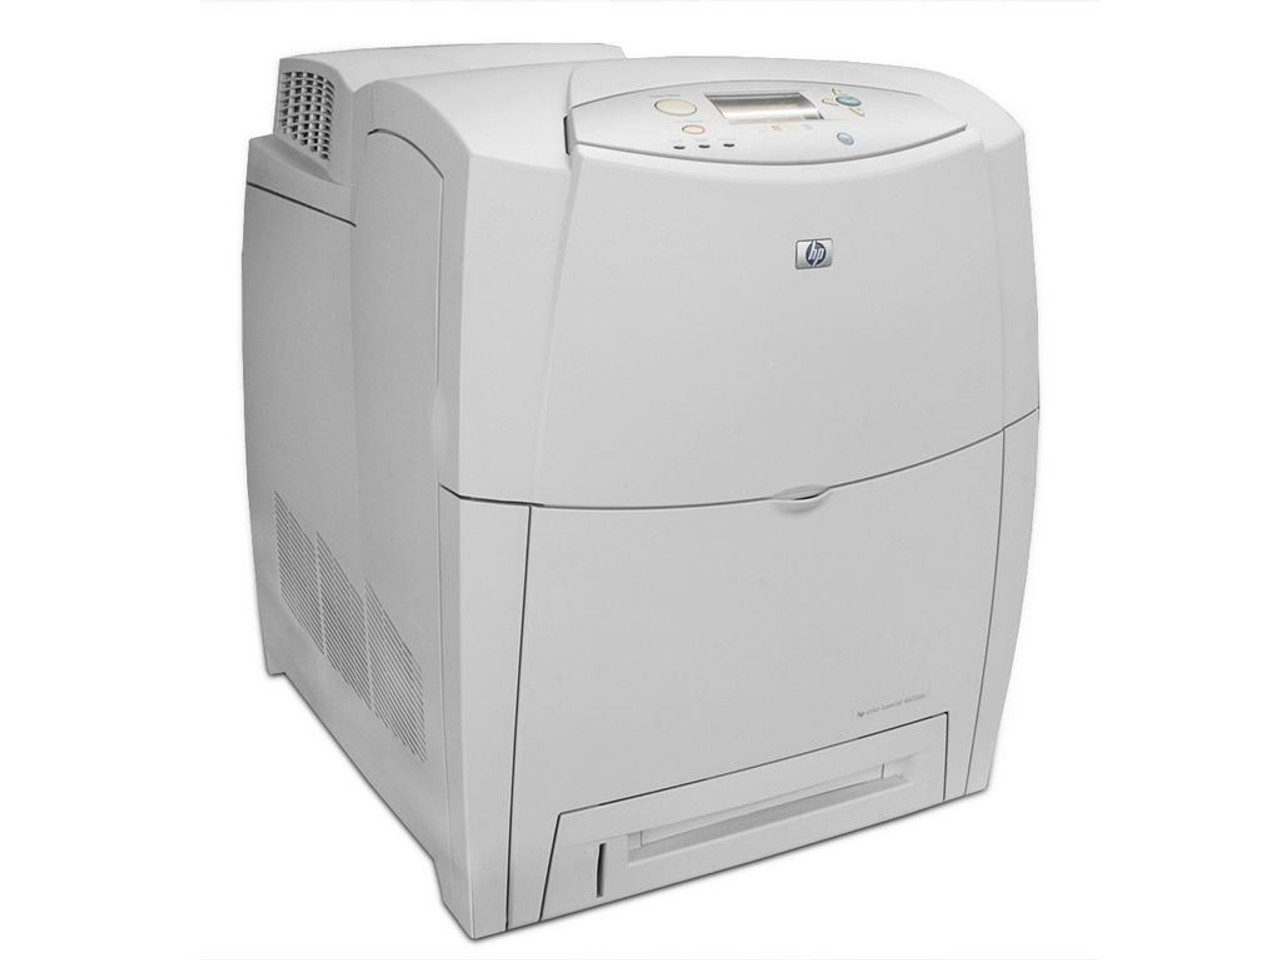 HP Color LaserJet 4600 - C9660A - HP Laser Printer for sale with low cost shipping